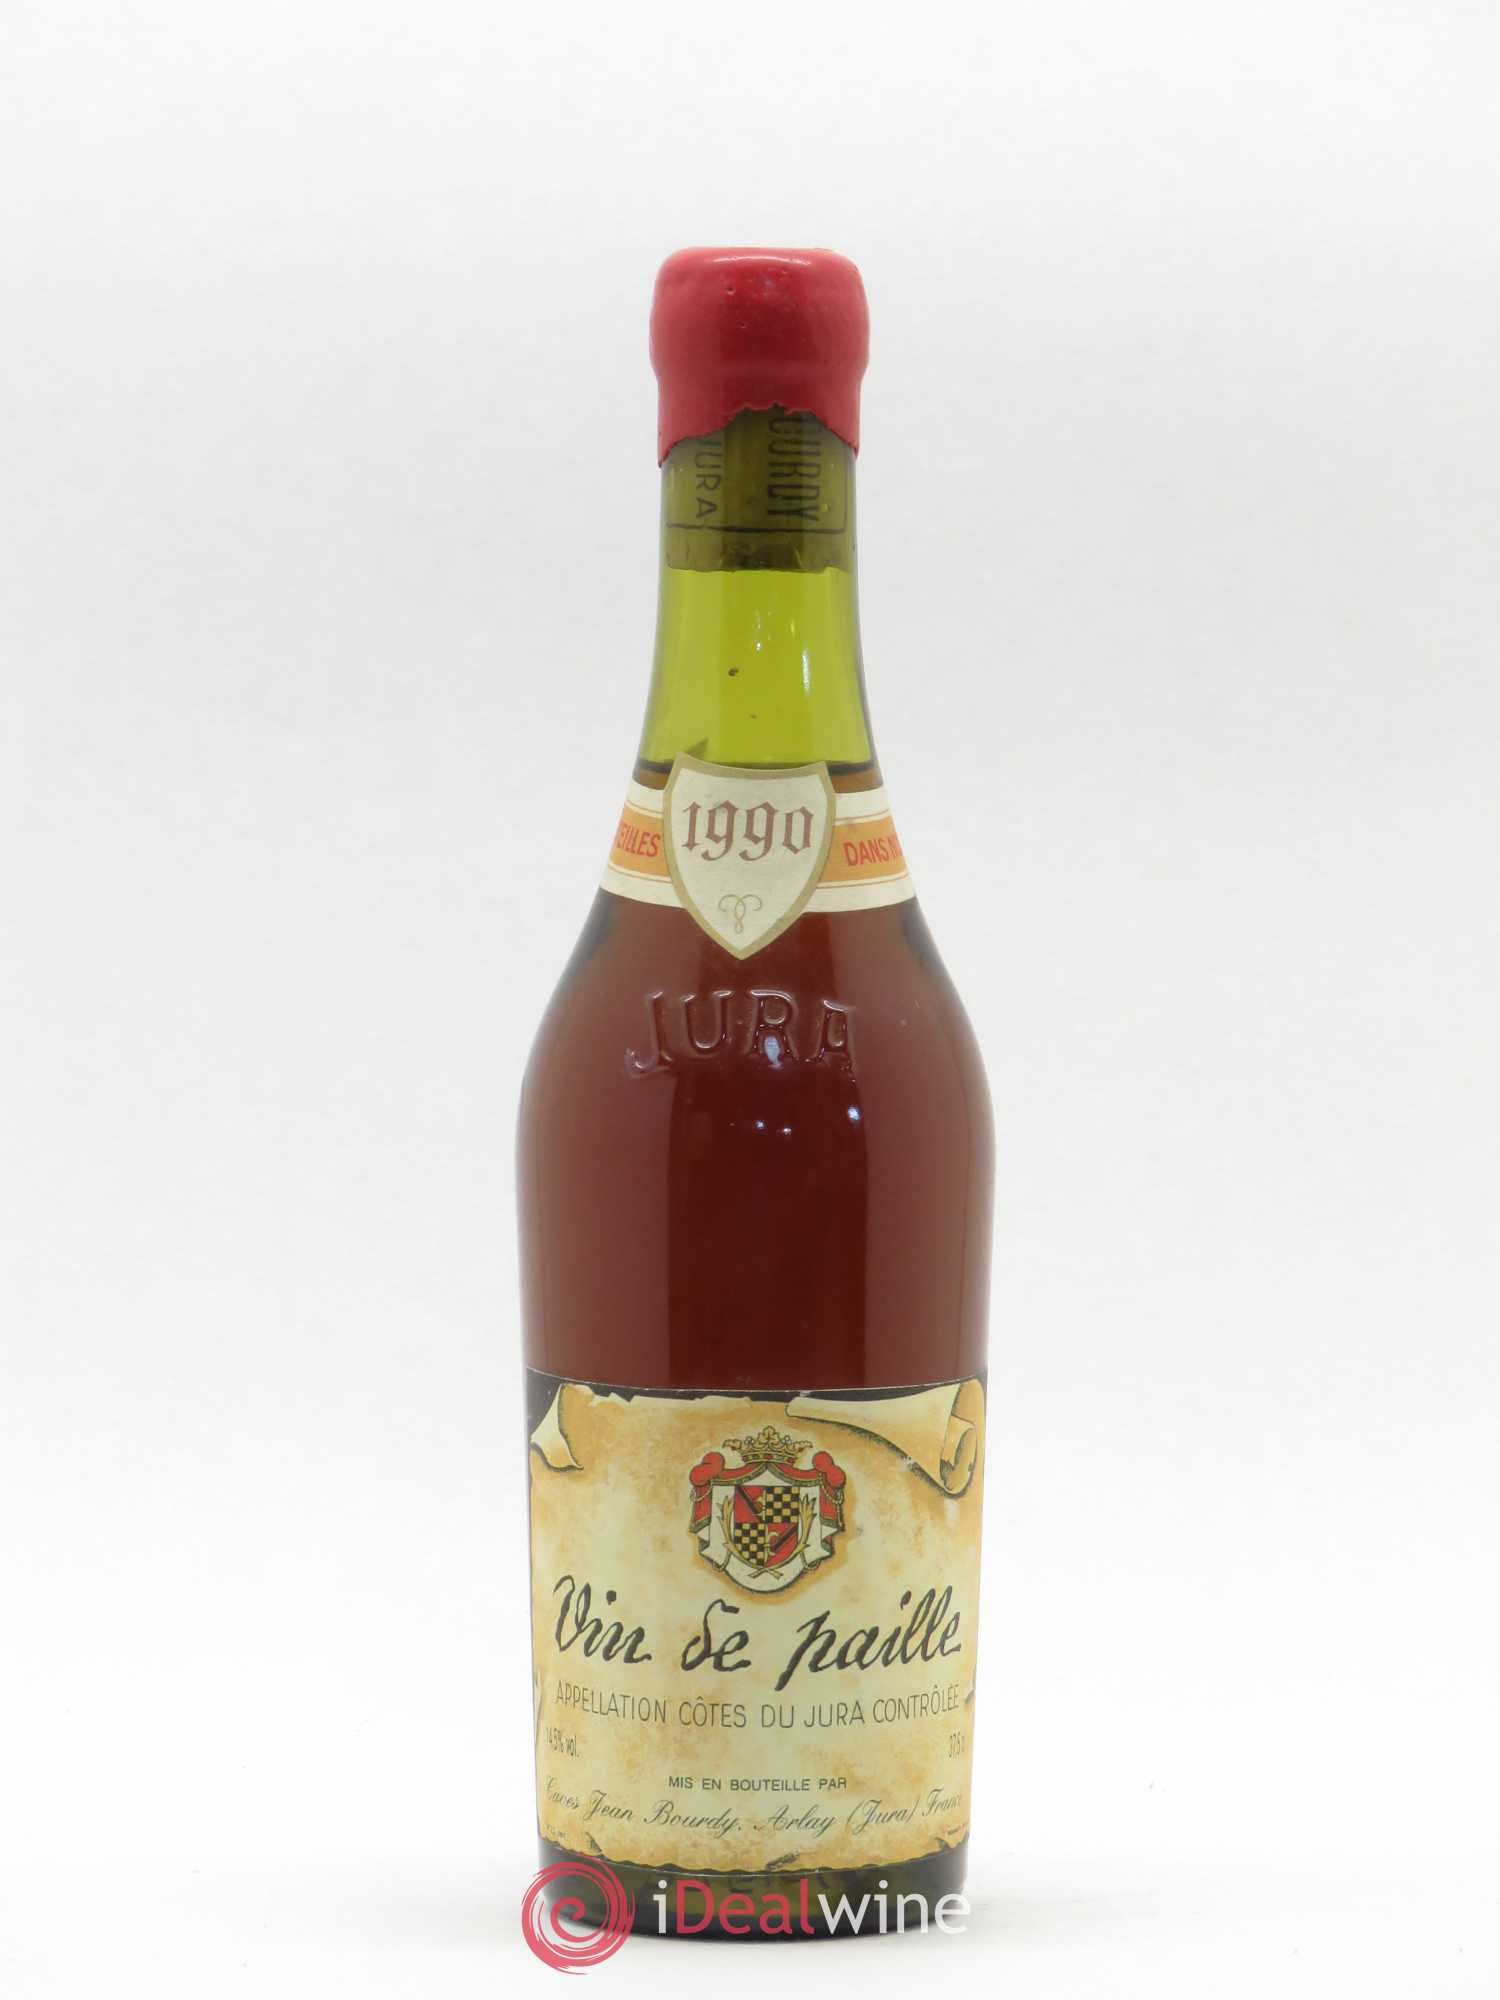 Côtes du Jura Vin de Paille Jean Bourdy  1990 - Lot of 1 Half-bottle